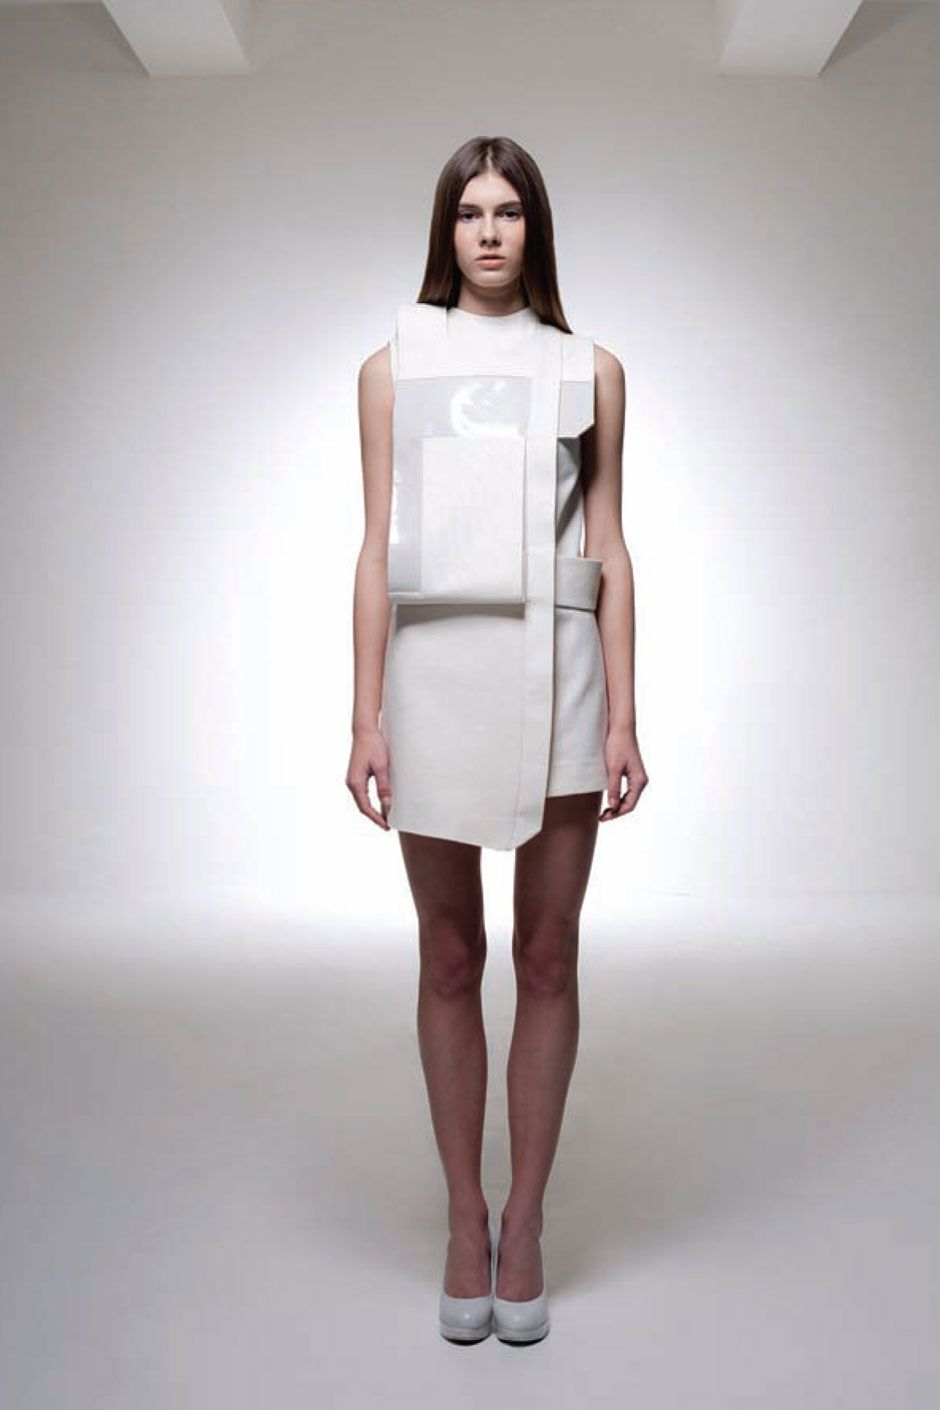 Heohwan Simulation S/S '12 Look Book